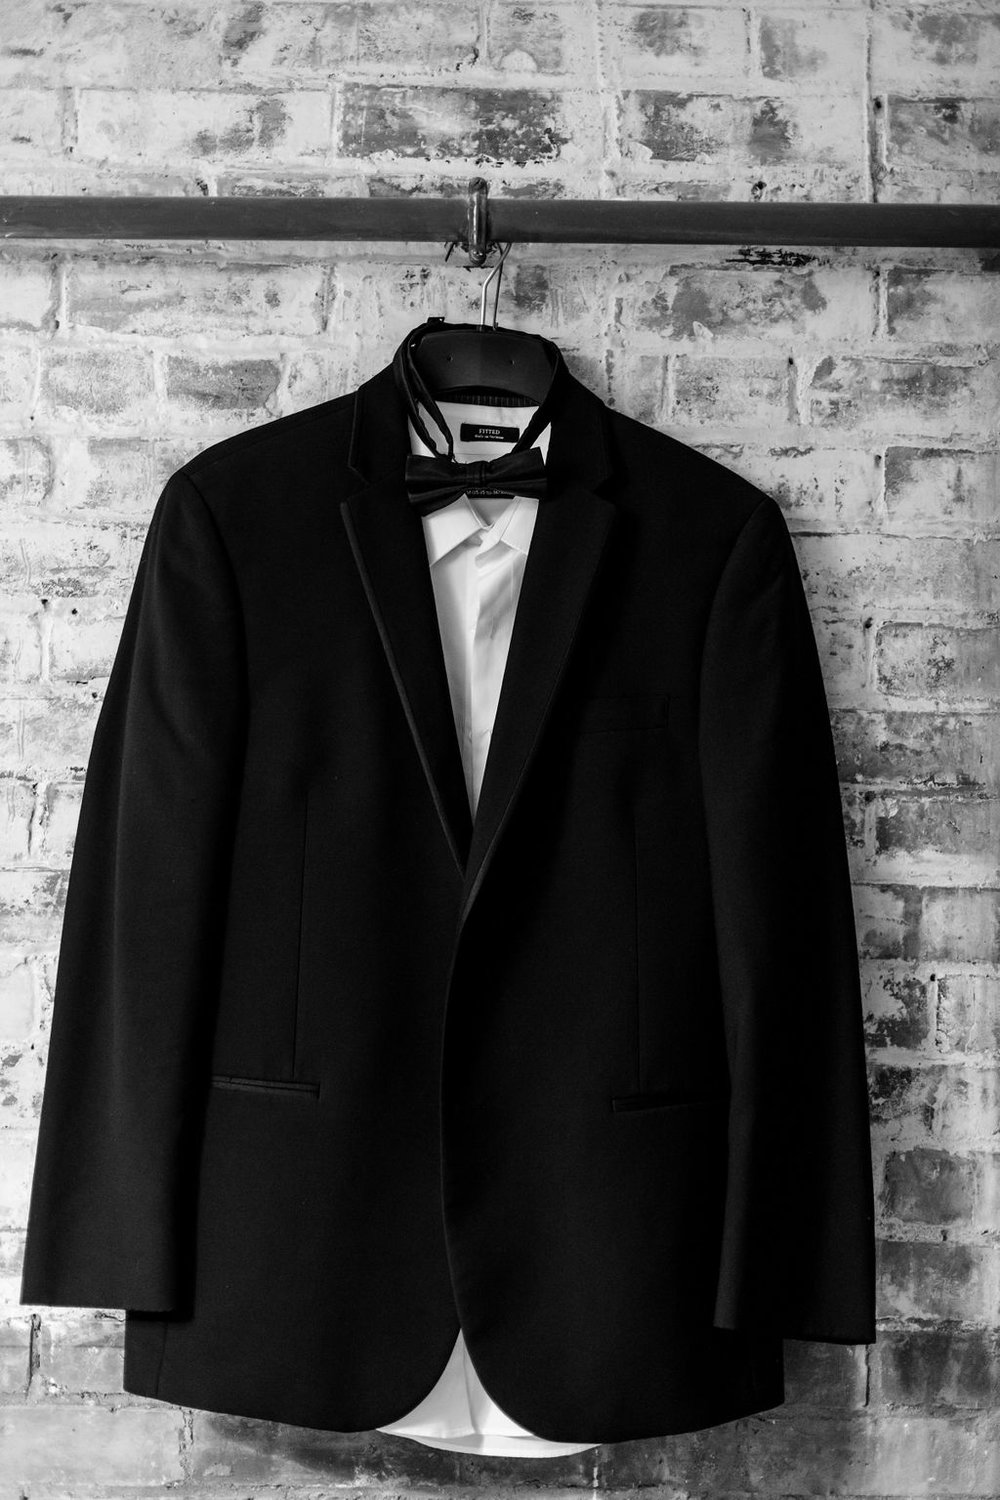 Mens black suit jacket, white undershirt with bow tie - Pearl Weddings & Events